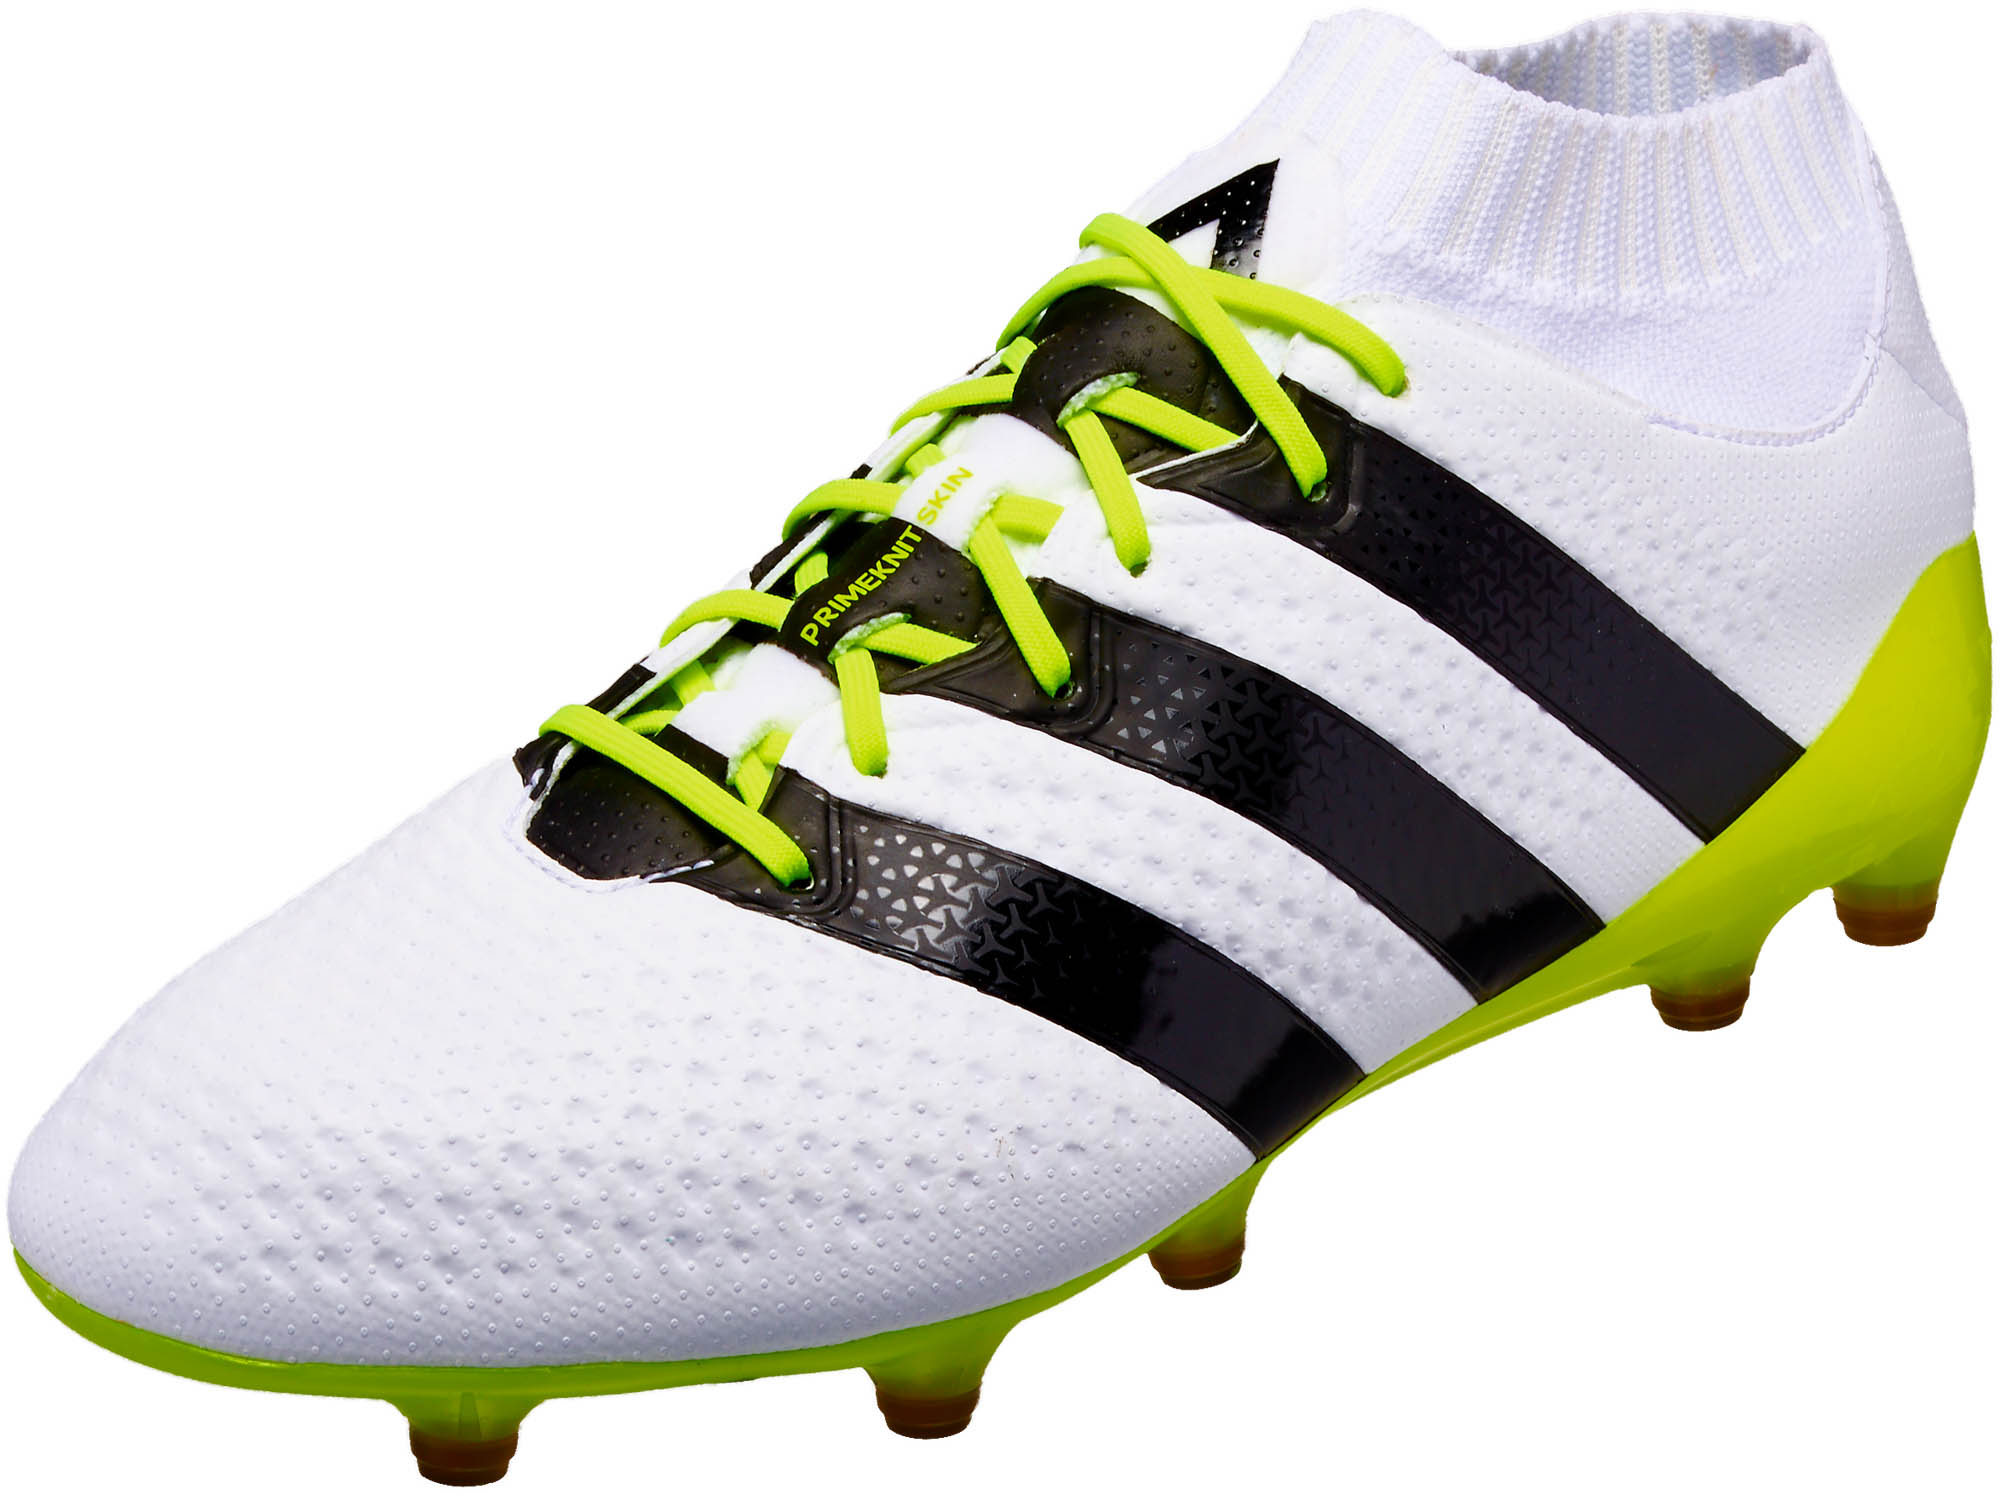 adidas Womens ACE 16.1 Primeknit FG Cleats - adidas Soccer Cleats 90514c41b